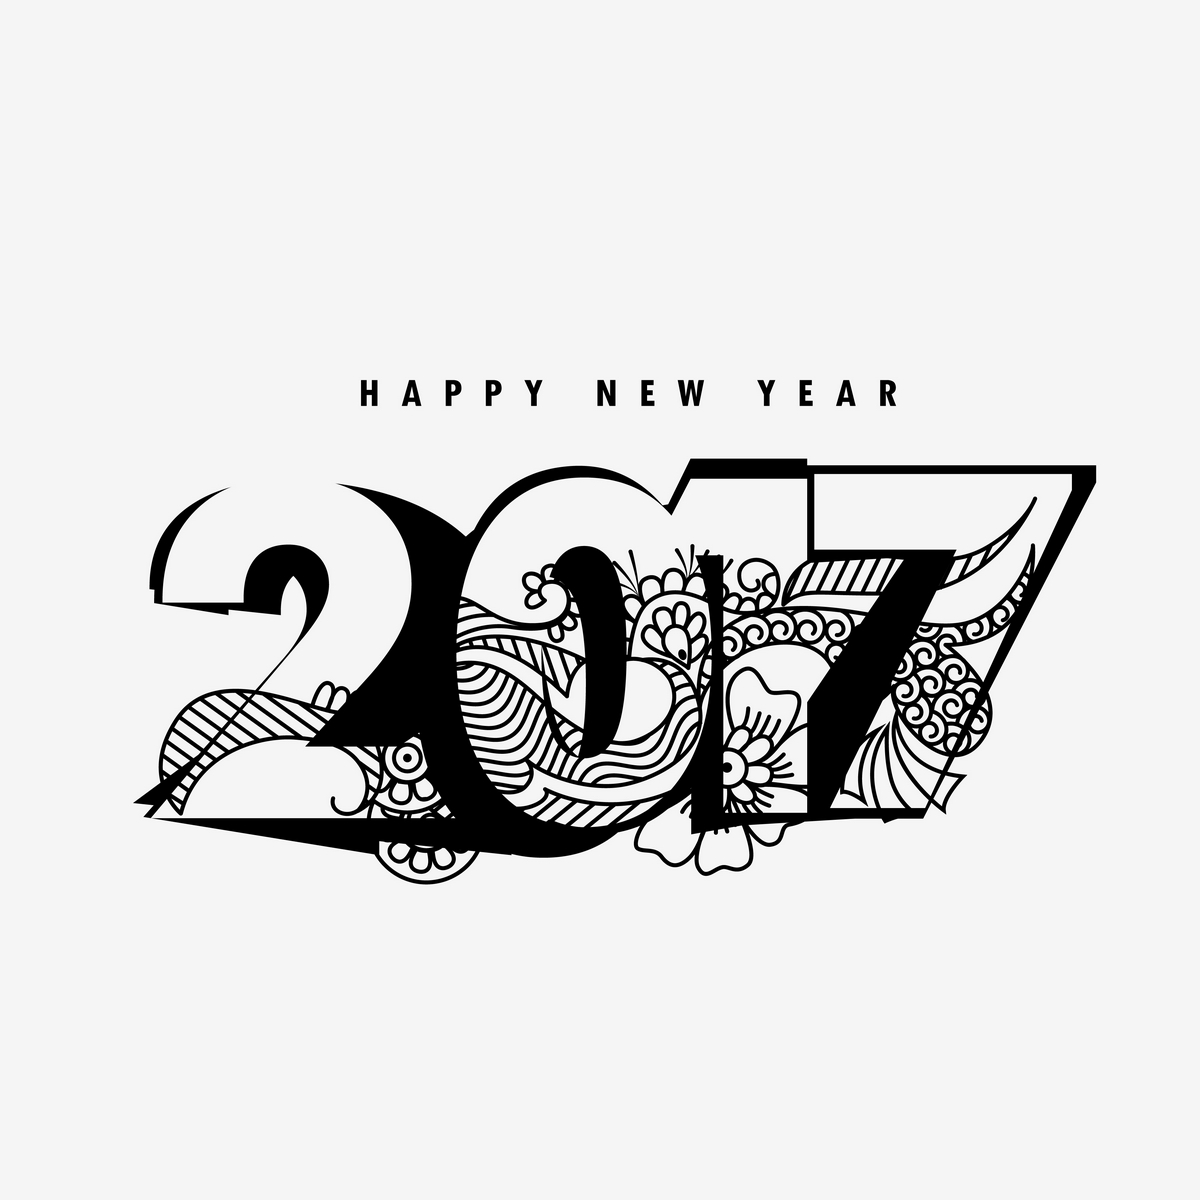 New Year 2017 HD Wallpapers Images